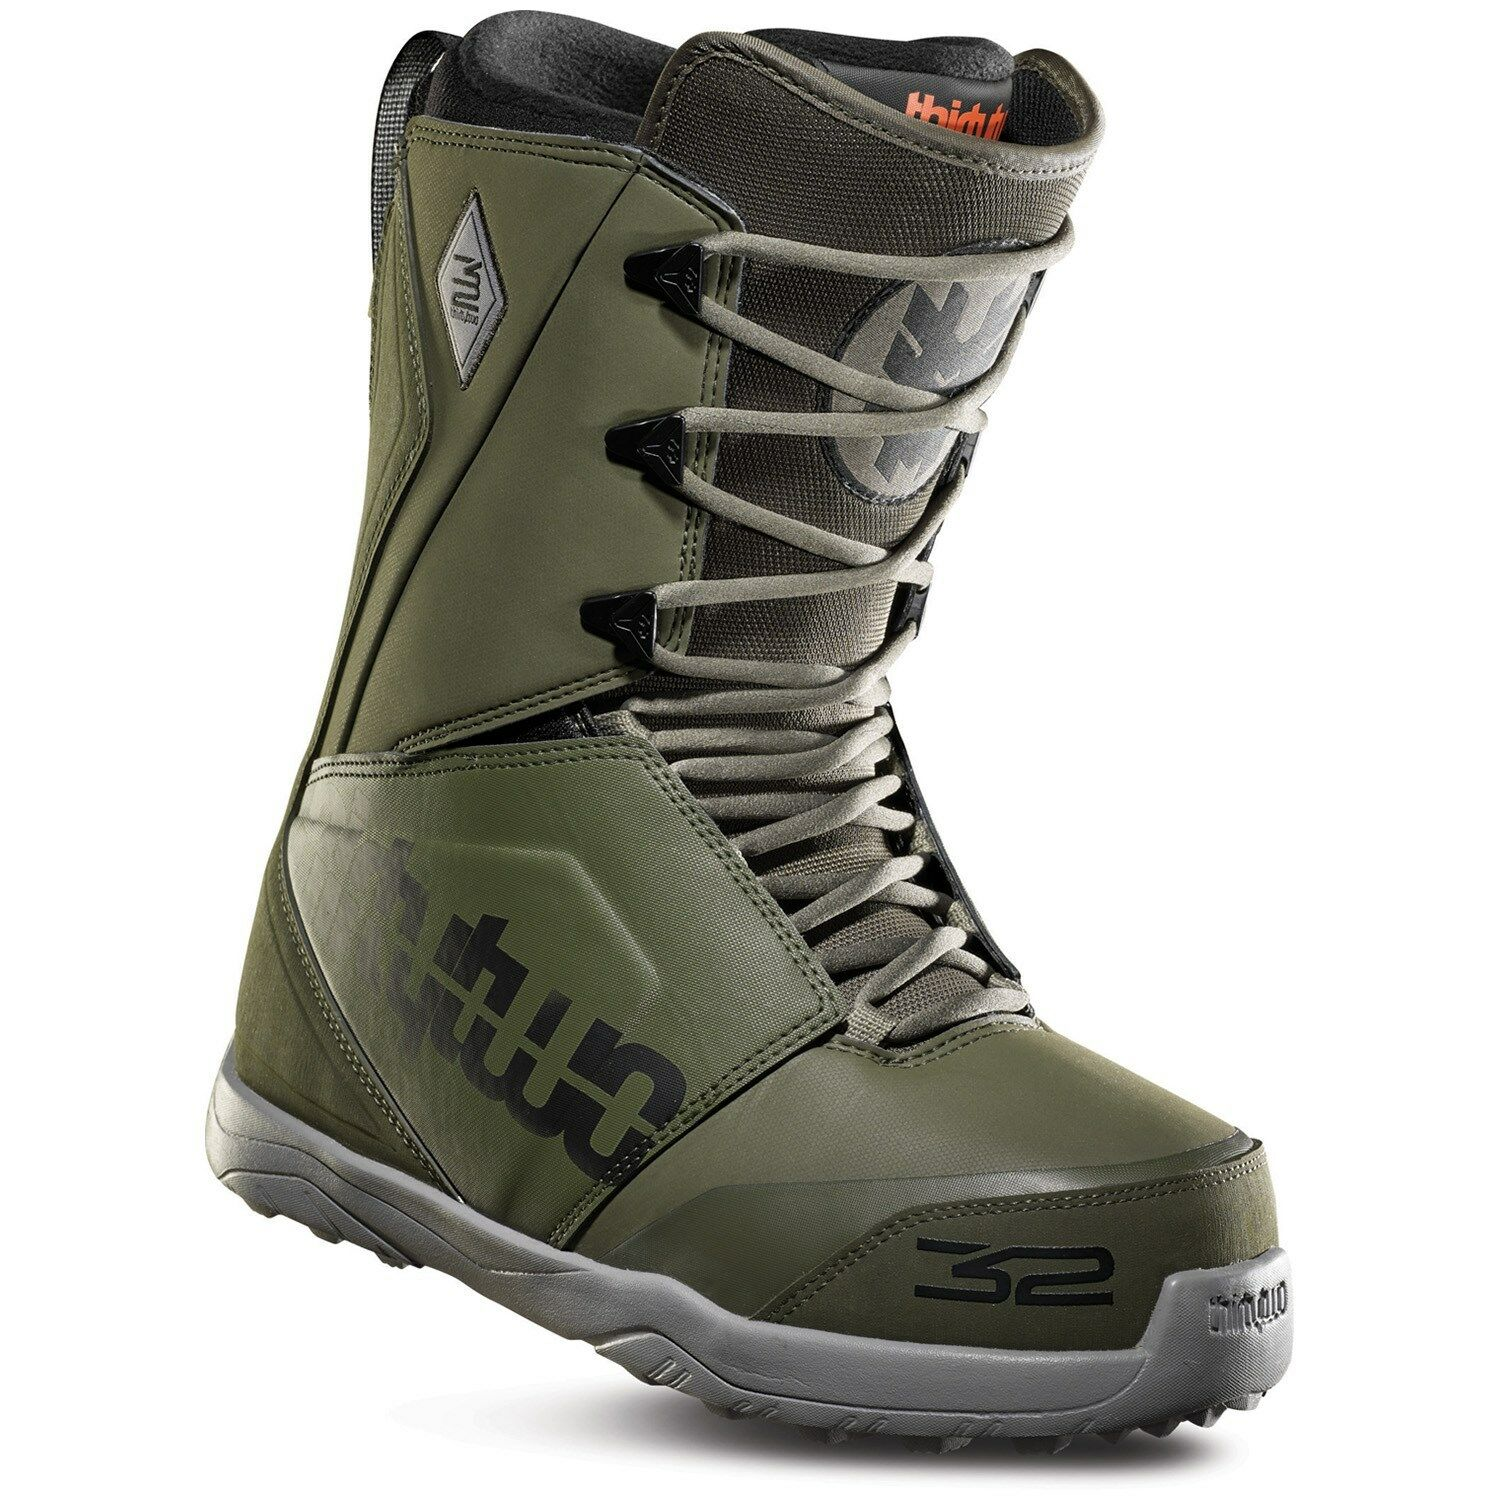 ThirtyTwo 32 - Lashed    2019 - Mens Snowboard Boots   Olive  the latest